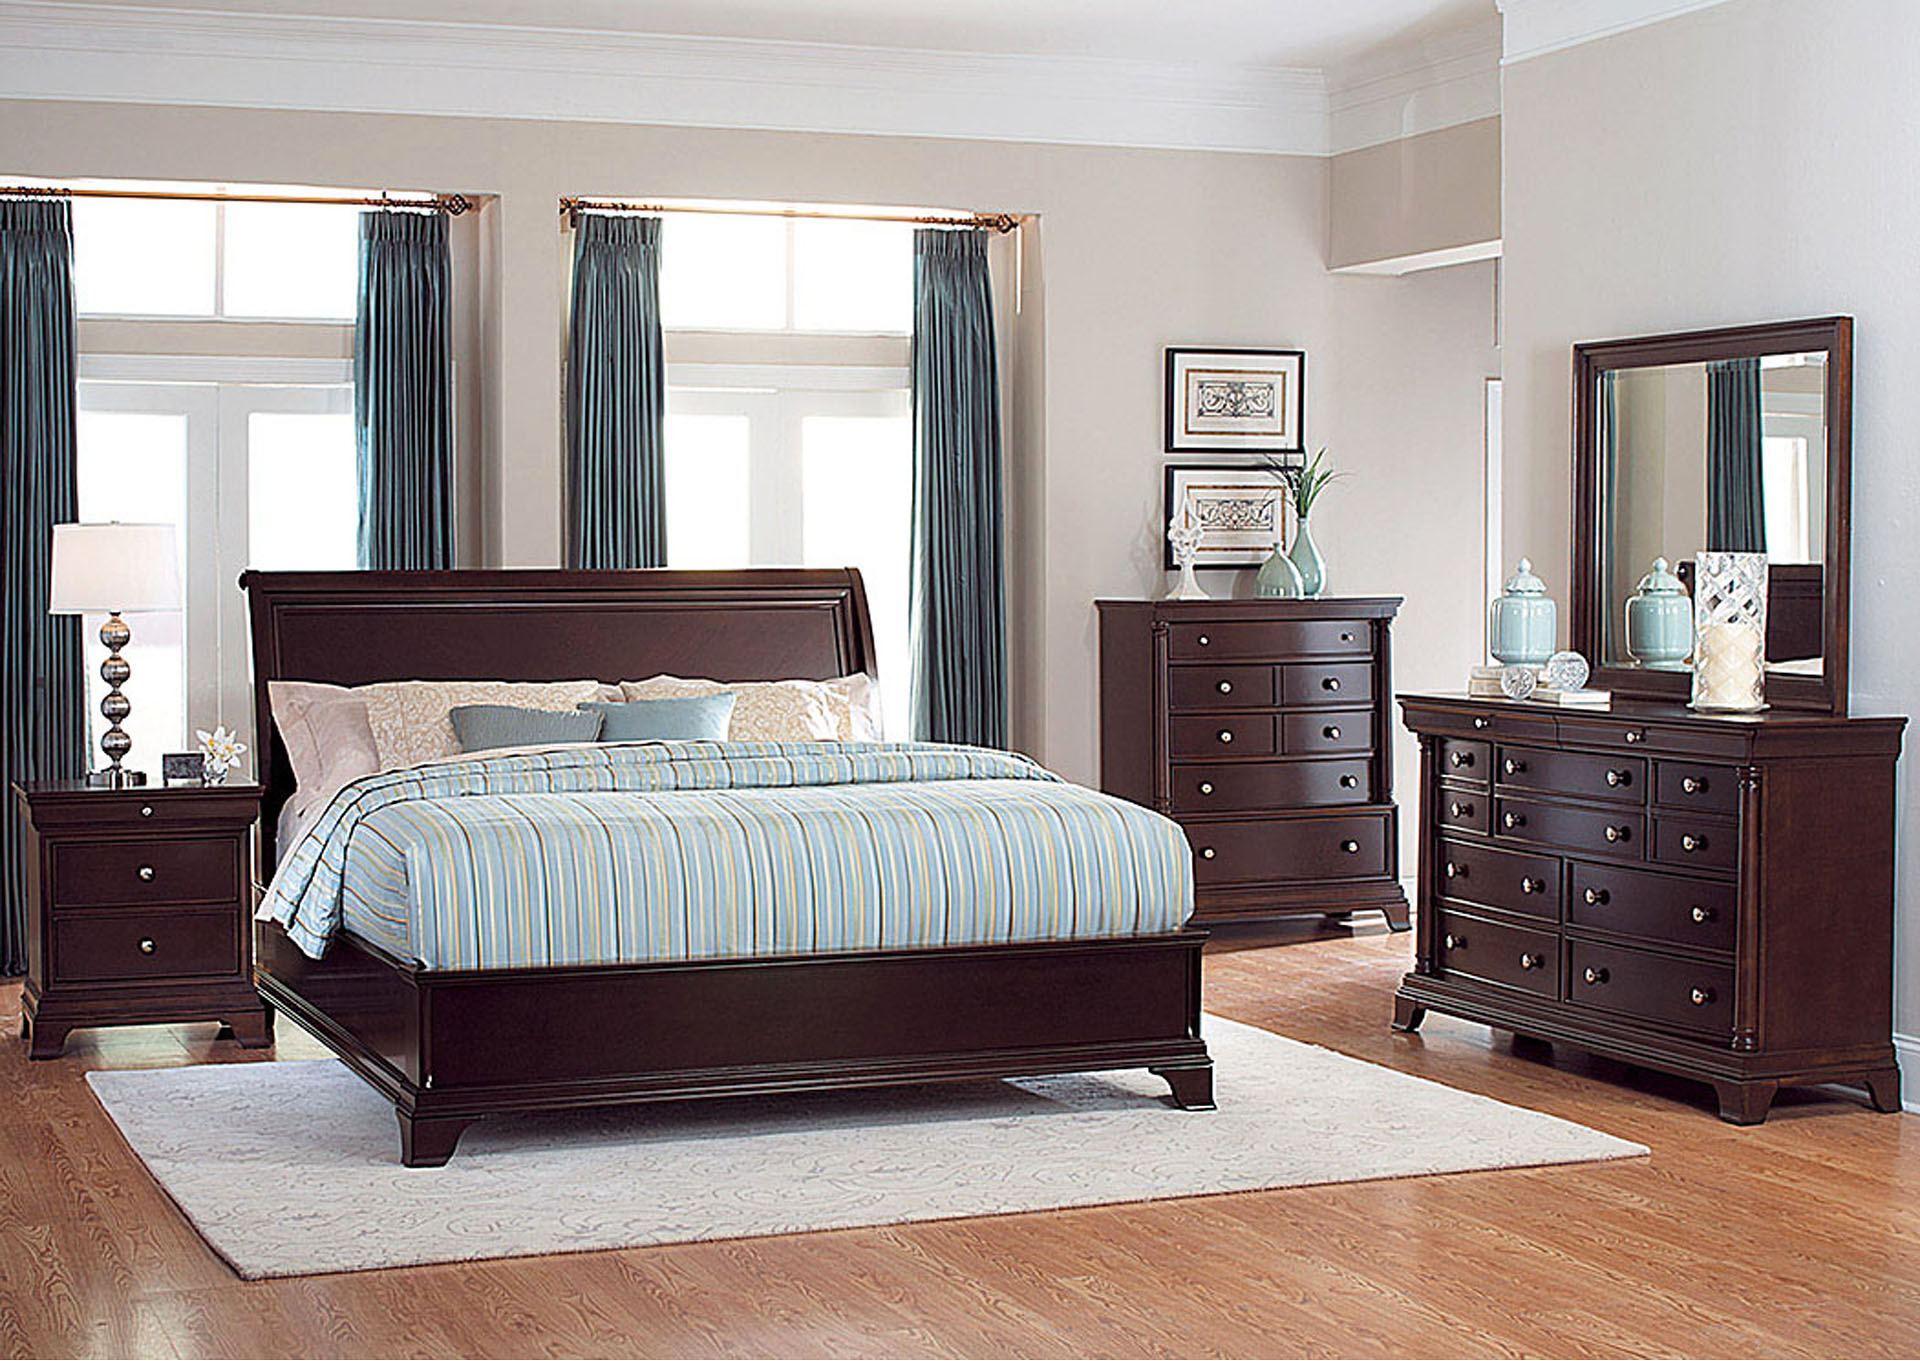 Inglewood Espresso Eastern King Low Profile Bed,Homelegance